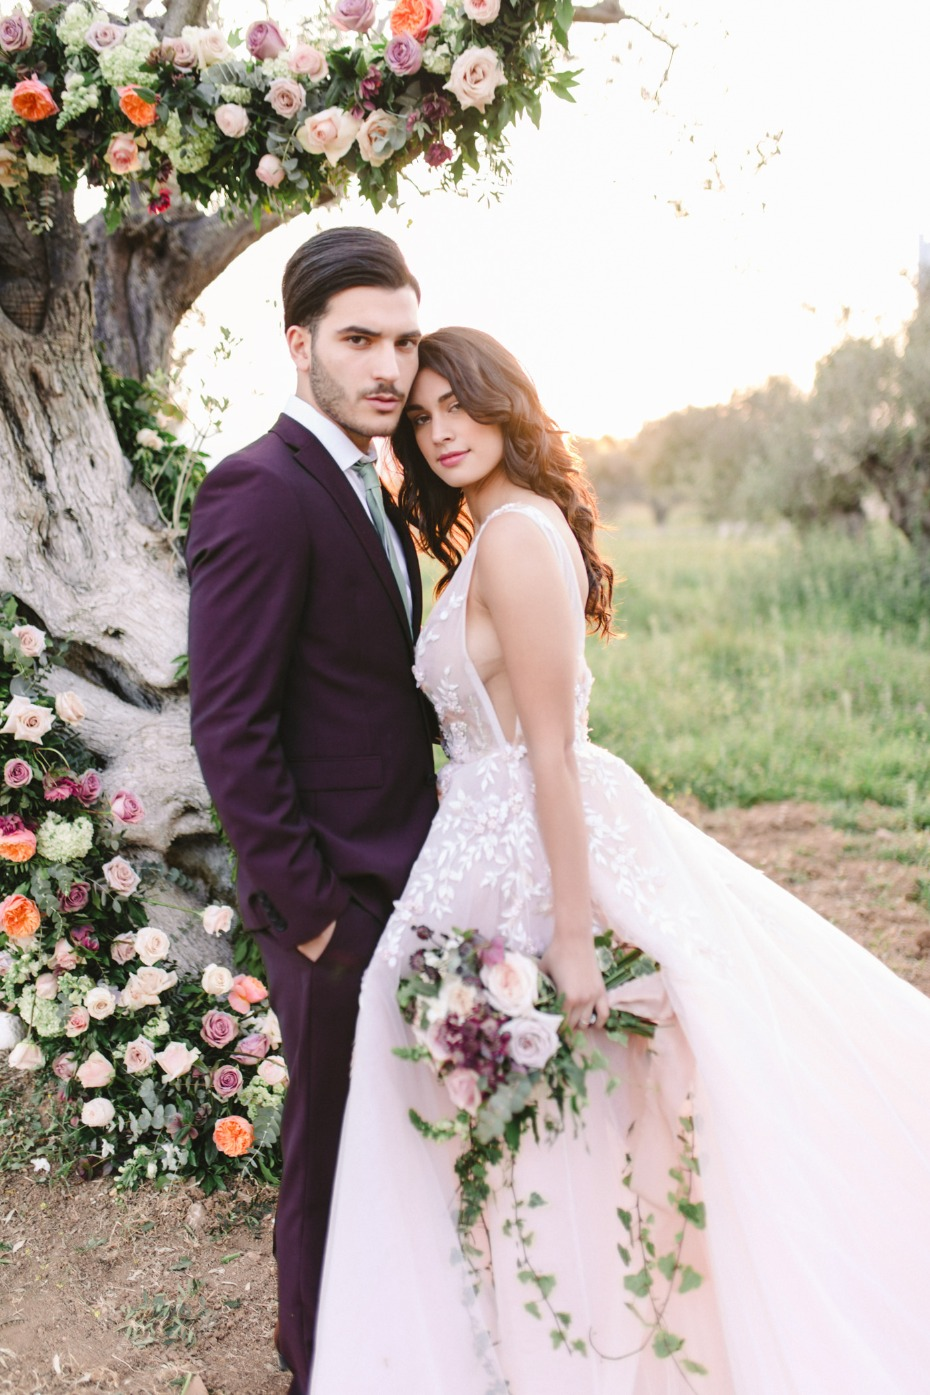 Olive Trees and Garden Roses wedding ideas